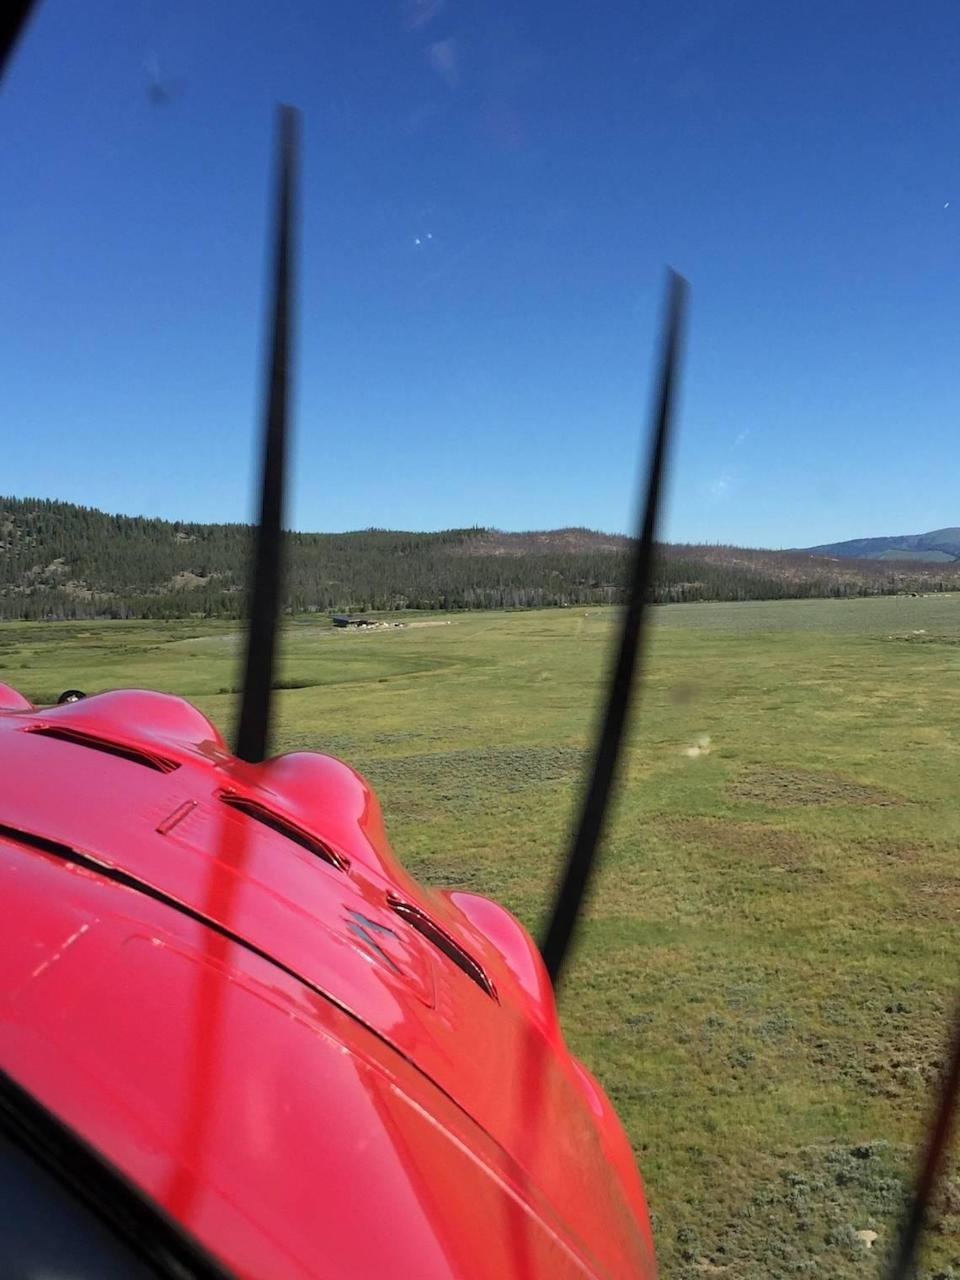 A plane lands in the grass pasture at Hell Roaring Ranch that Michael Boren uses as an airstrip. Boren has applied for a permit to designate the pasture as an official airstrip. He said that would allow it to be used by emergency services like search and rescue.